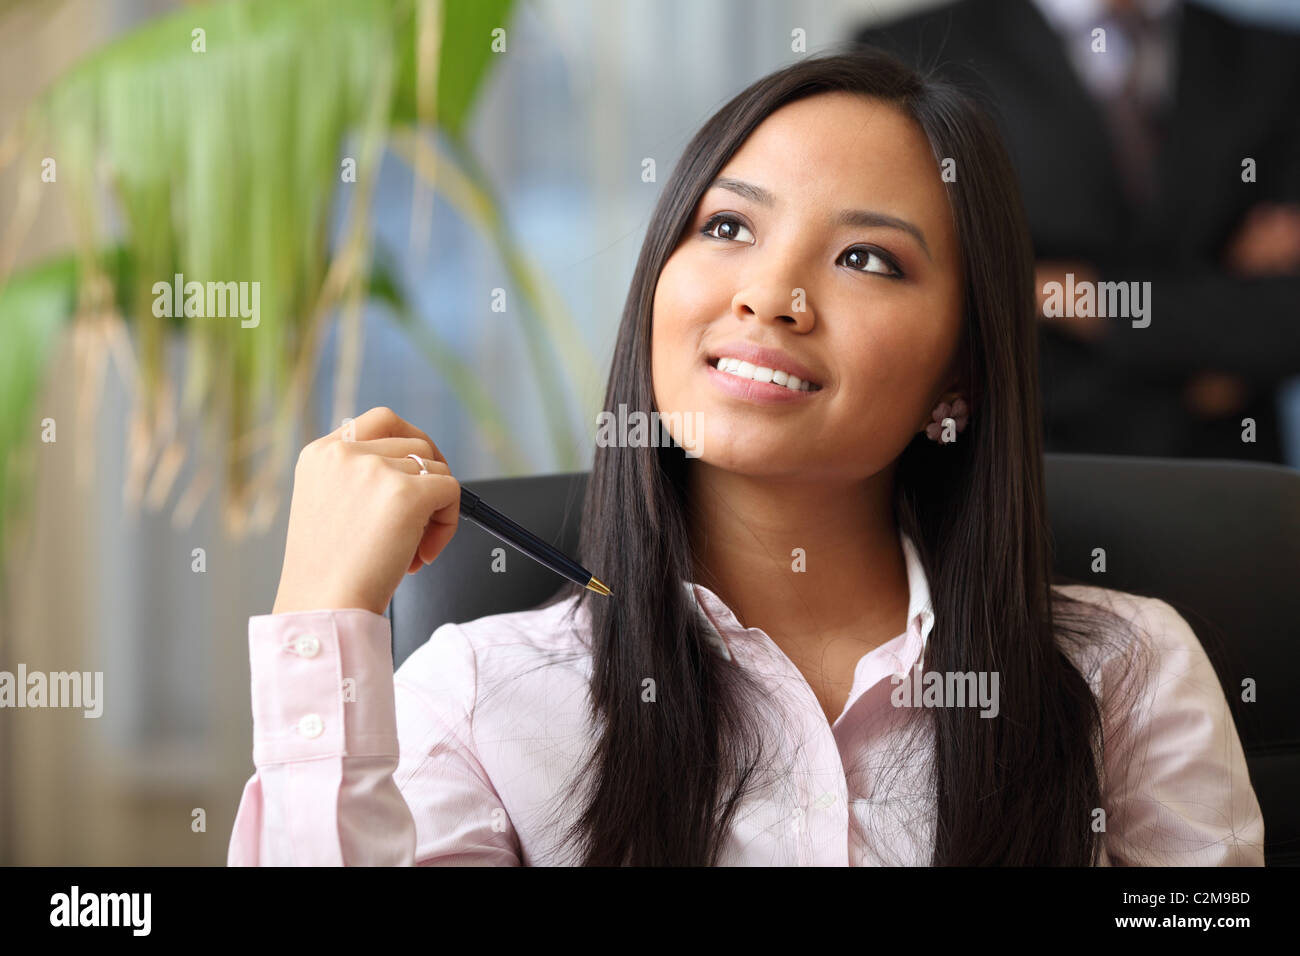 Portrait of a young beautiful asian woman in a business environment - Stock Image